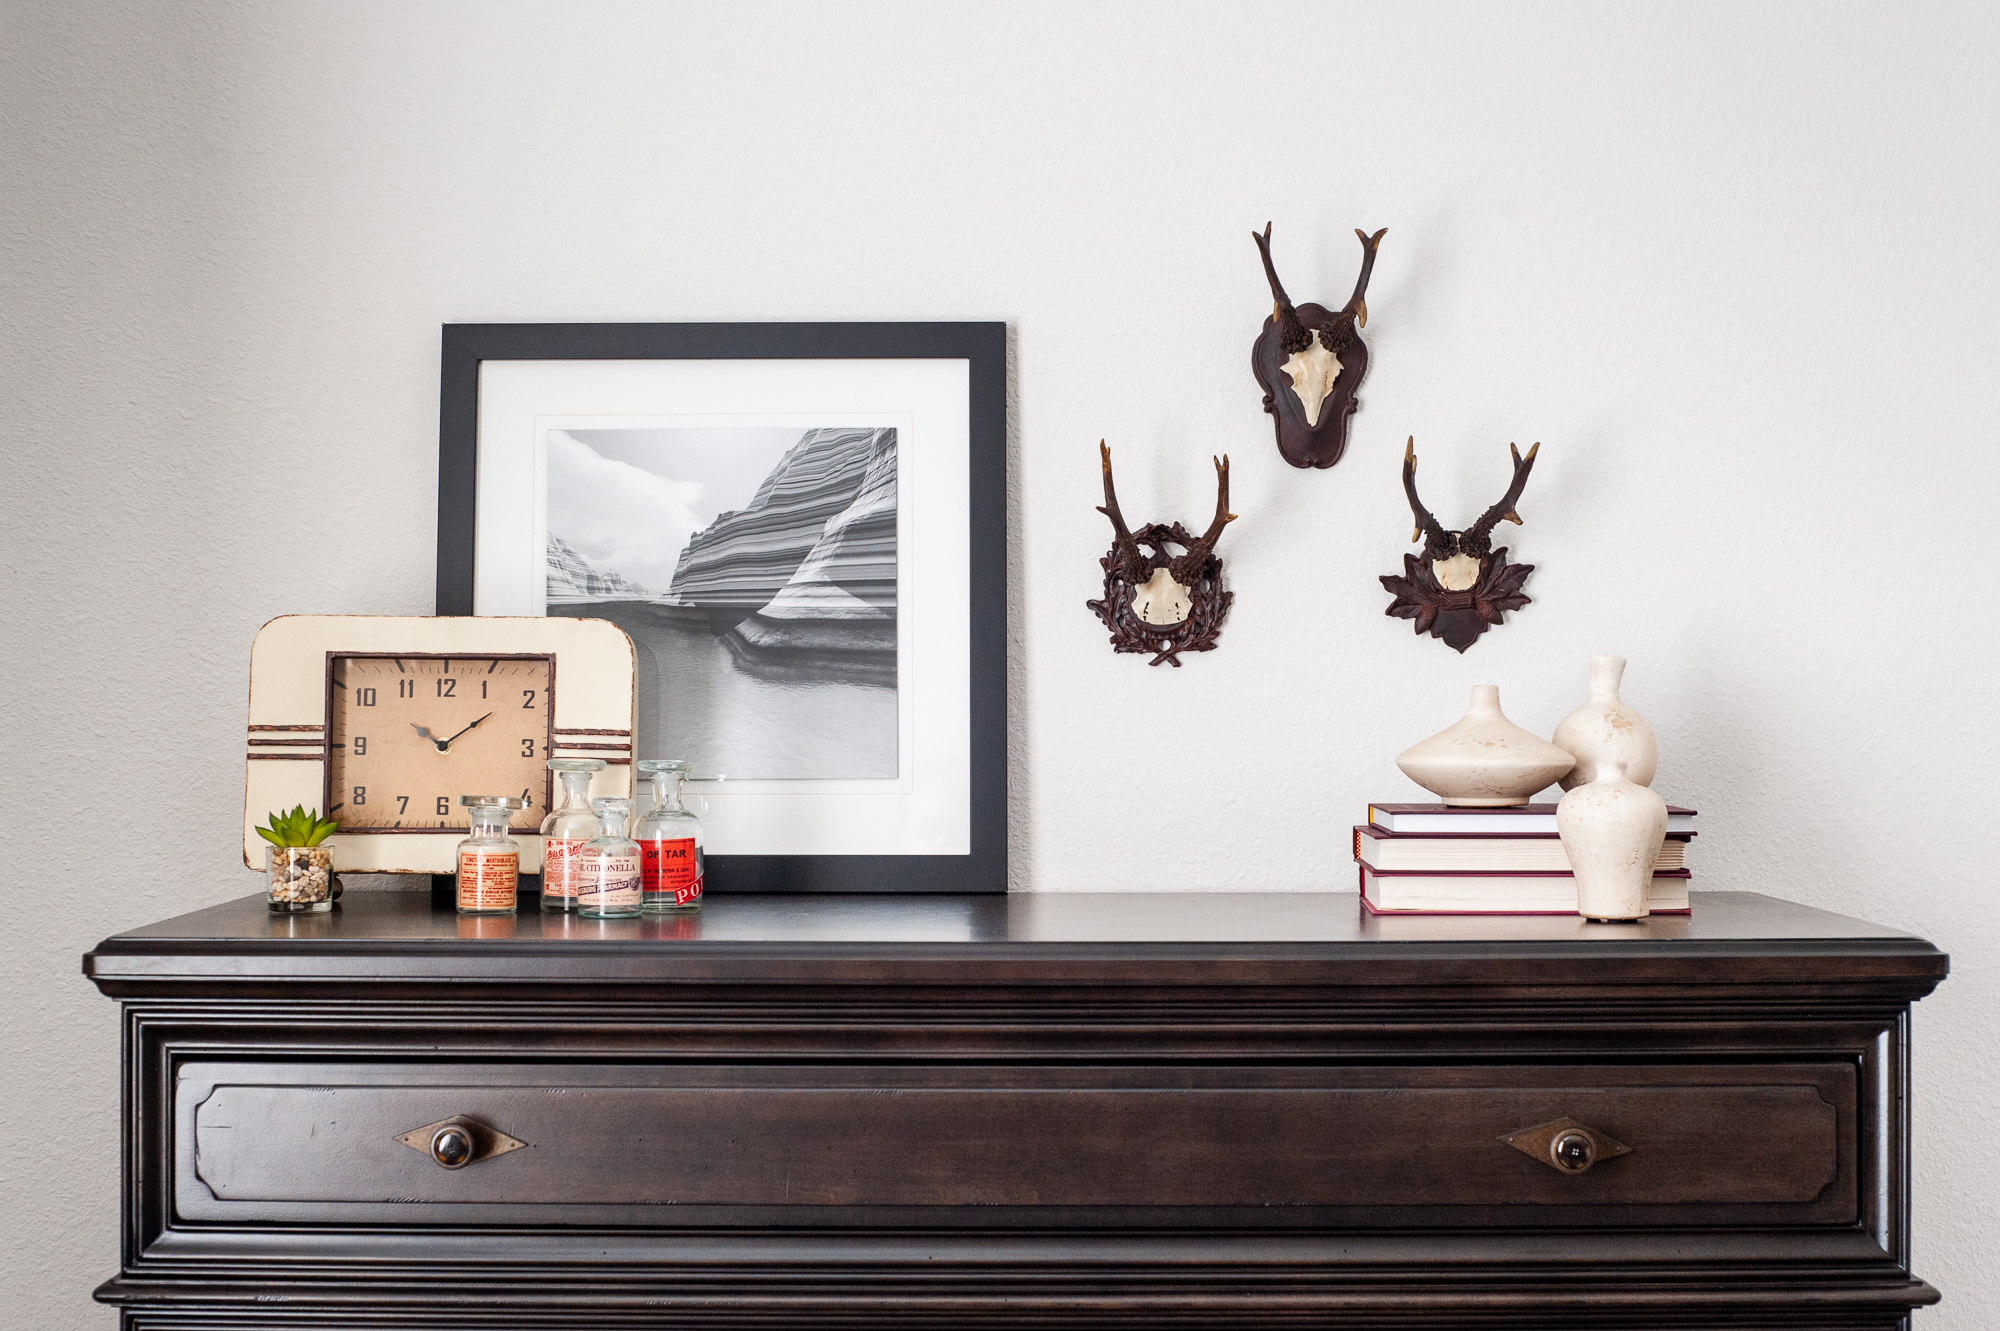 Micamy_Interior Designer_Design_Interior_Model_Merchandising_BoysBedroom_Boys_Camping_McGee&Co_PBTeen_Antlers_Universal_Furniture_Styling_SpindleBed_Rustic.jpg